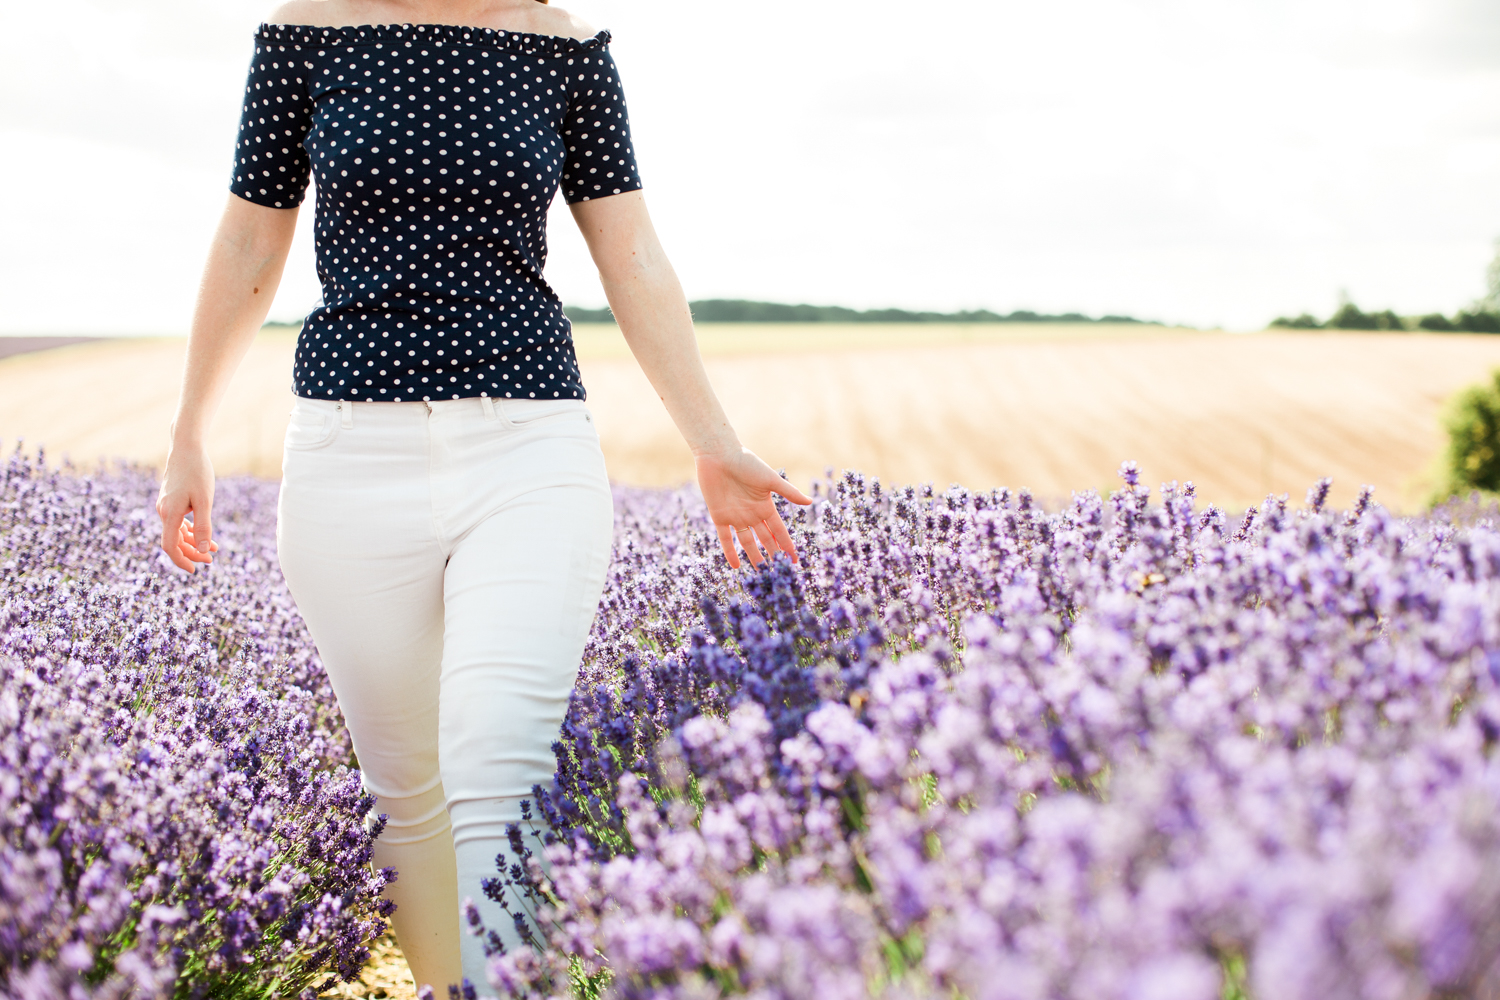 Sophie-Evans-Photograpy-Cotswold-Lavander-Engagement-shoot-Cotswold-wedding-photographer-21.jpg